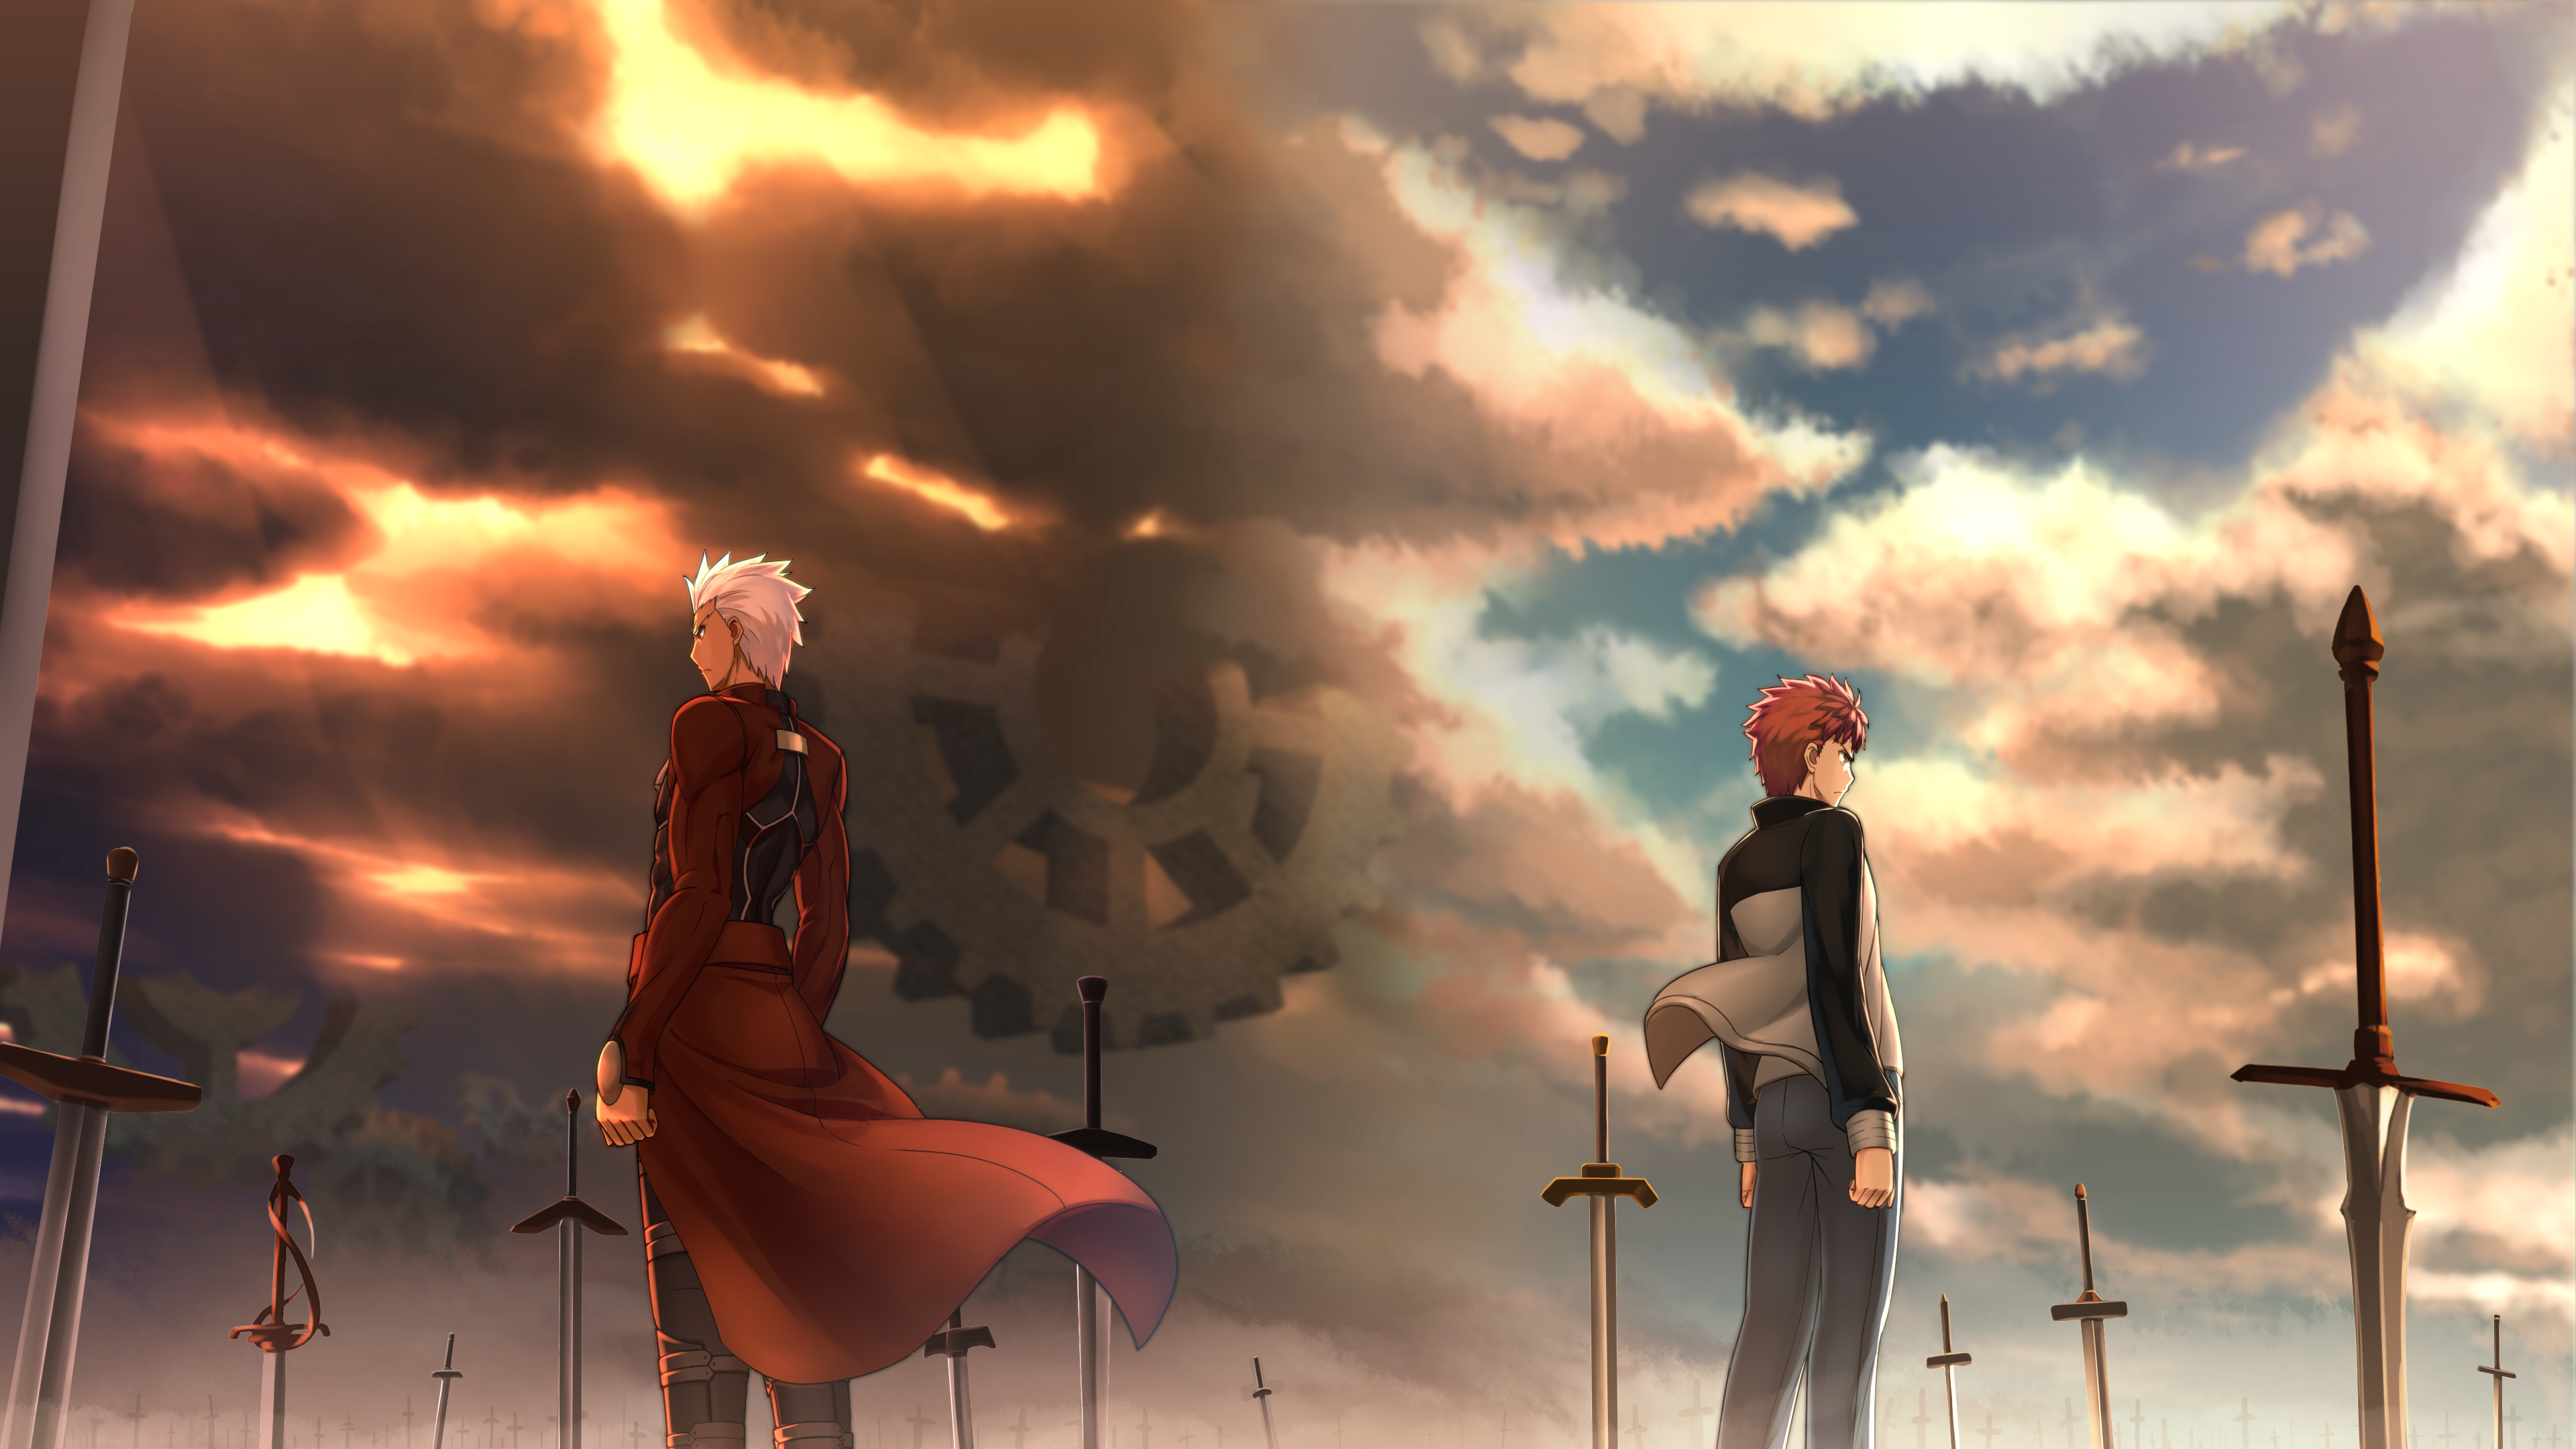 Fate stay night unlimited blade works 4k ultra hd wallpaper background image 3840x2160 id - Fate stay night wallpaper ...